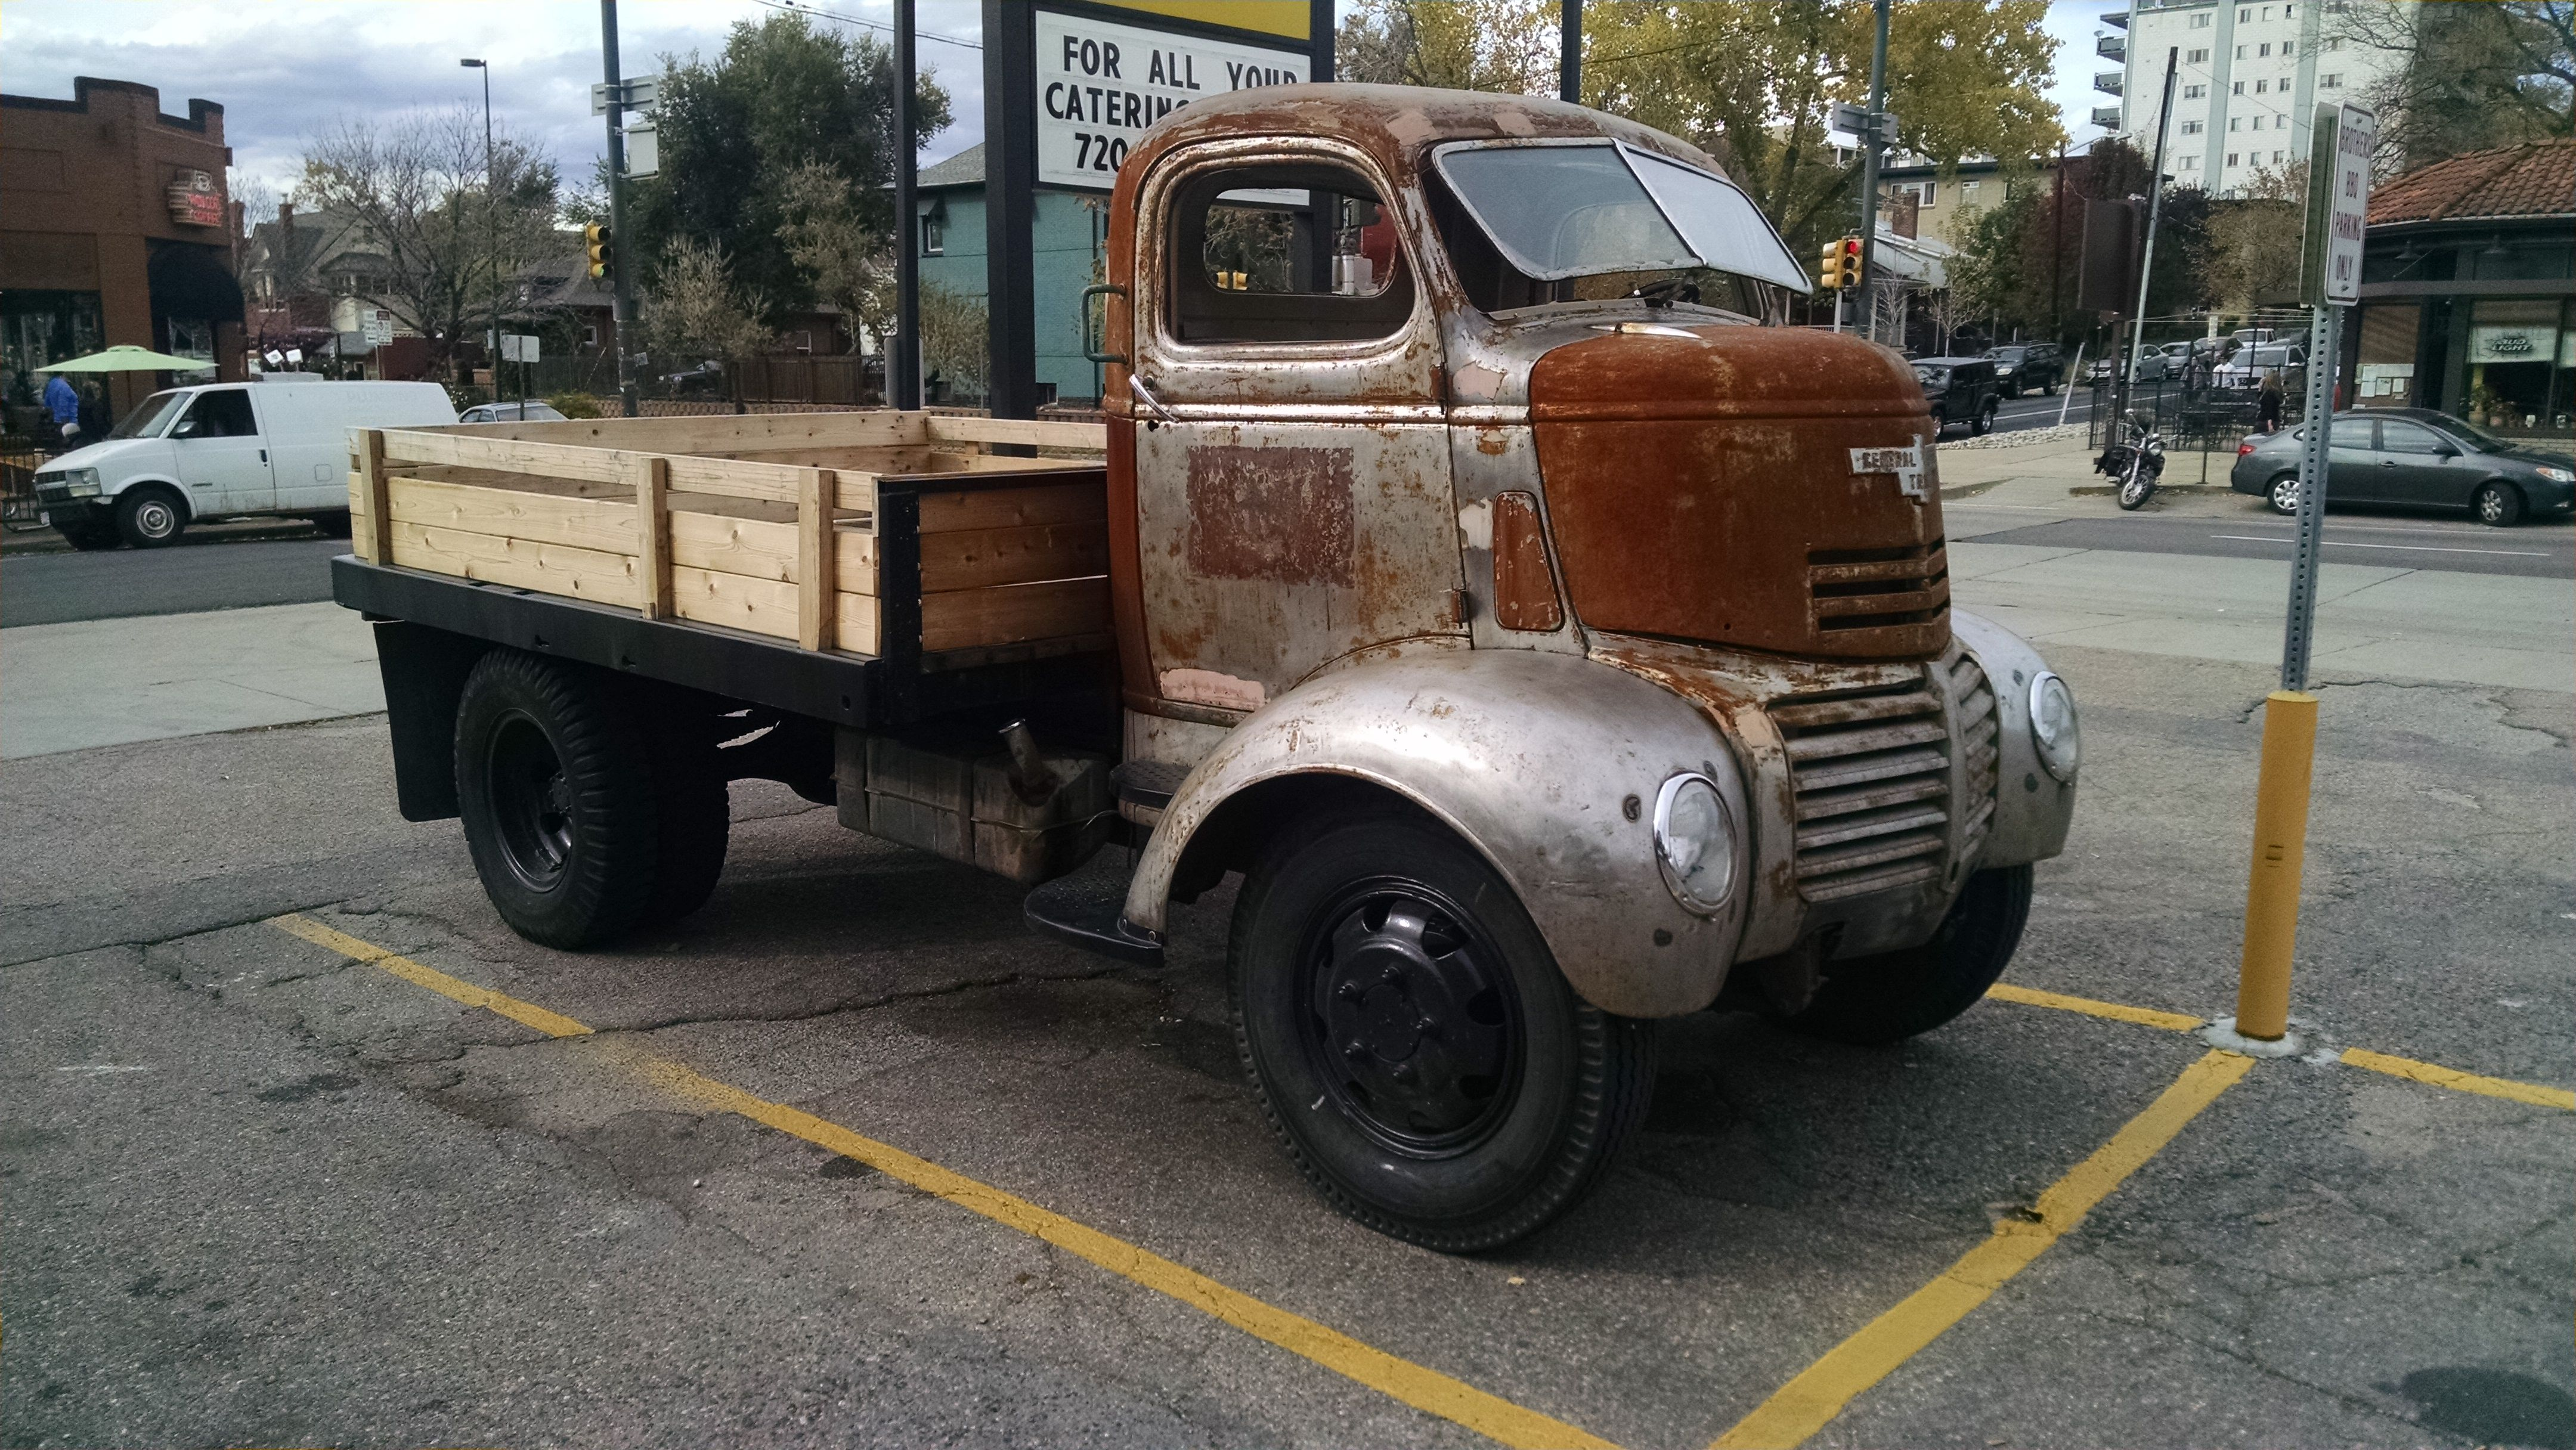 1947 gmc coe Google Search Gmc vehicles, Trucks, Gmc truck